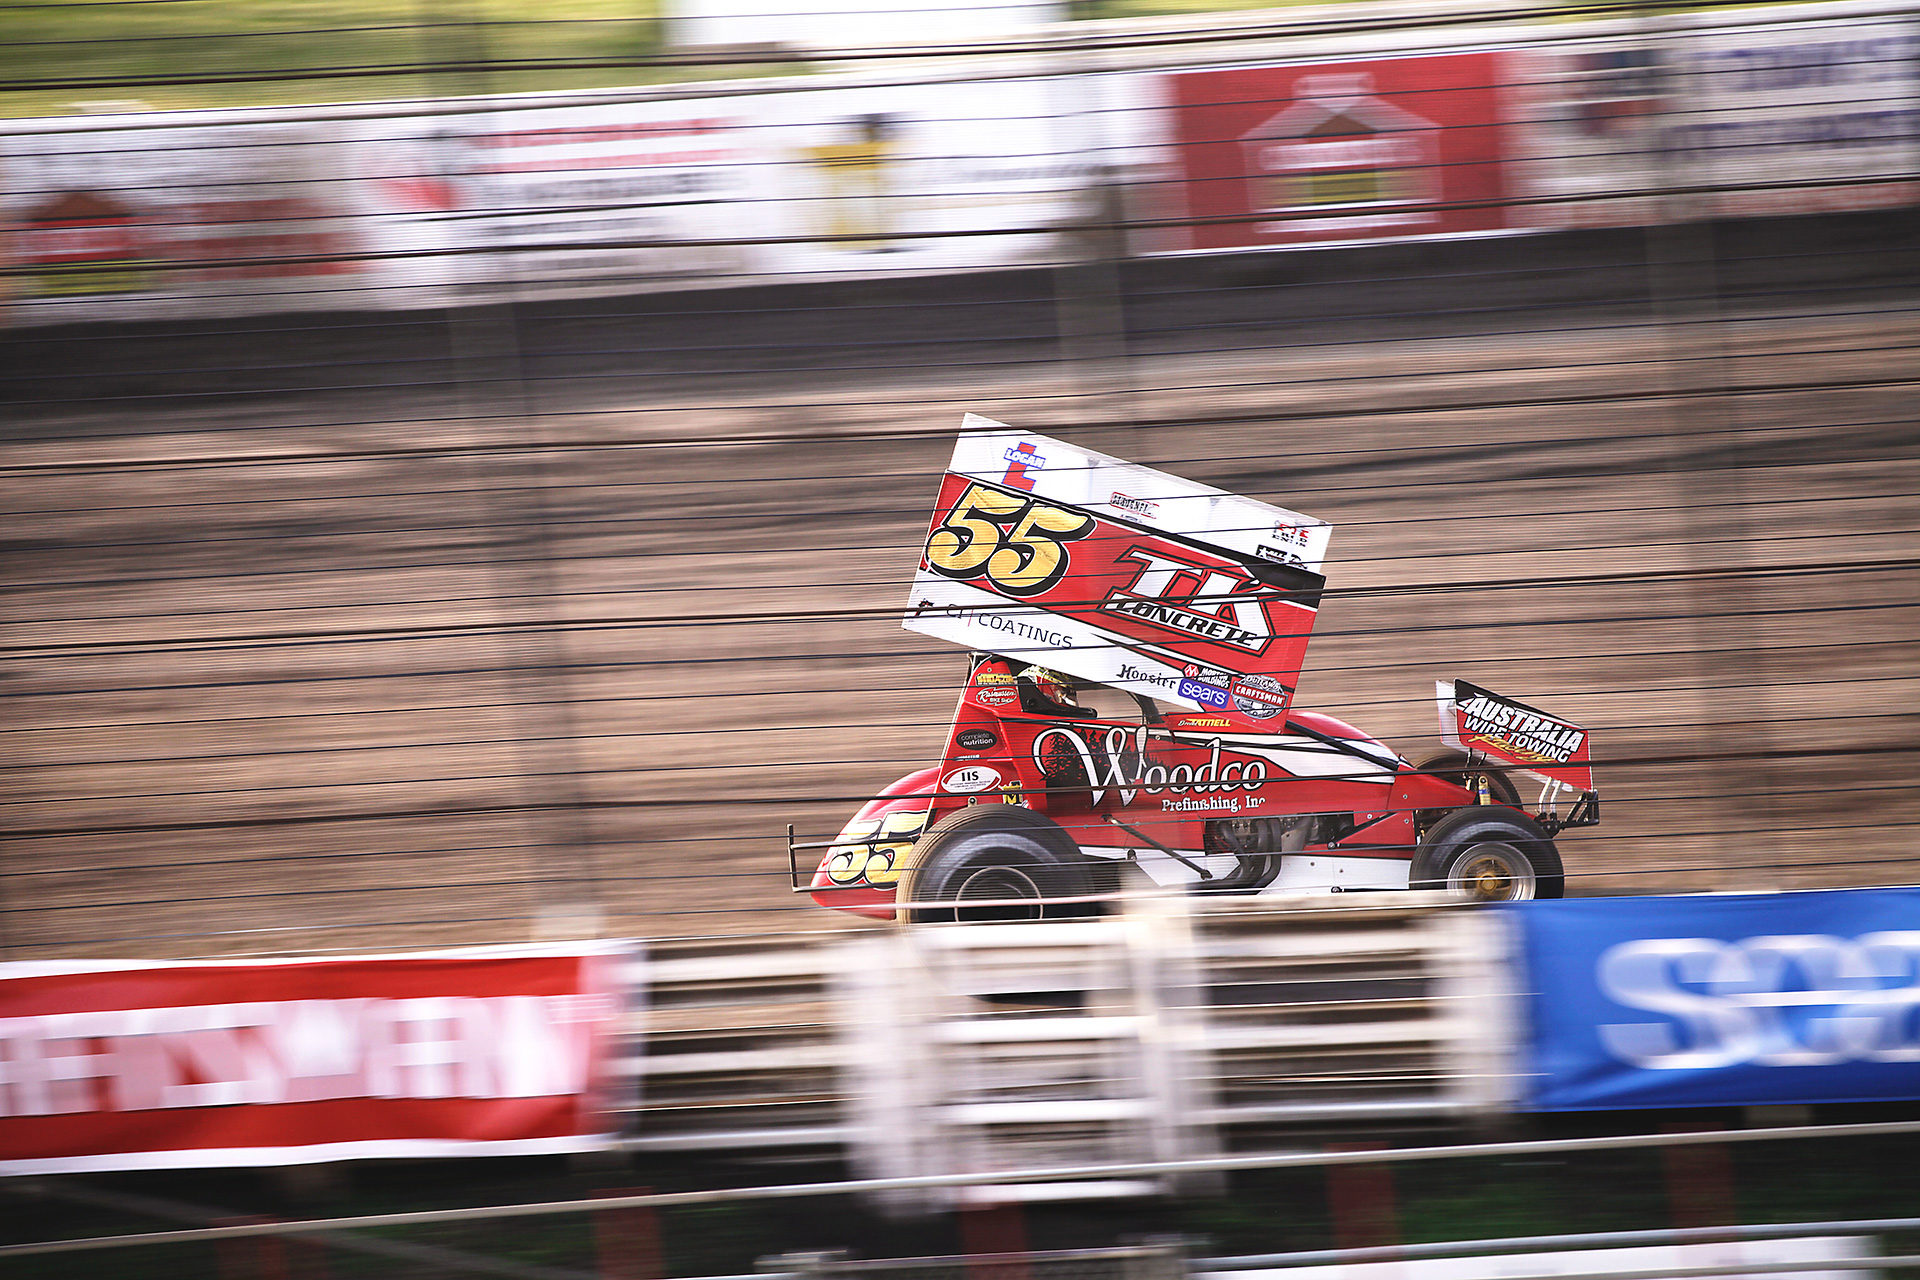 Australian favorite Brooke Tatnell and his sharp #55 have been strong in weekly competition at Knoxville. Tatnell scored at 10th place finish during the feature at Knoxville on Saturday night with The World of Outlaws. ( Jeffrey Turford / TDP )